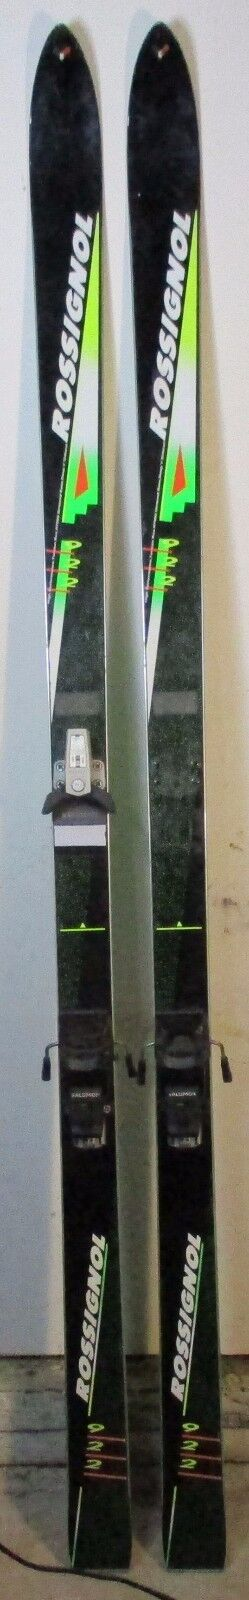 Rossignol 922 High  Performance Snow Ski with Salomon S-326 Binding For Sale  no.1 online